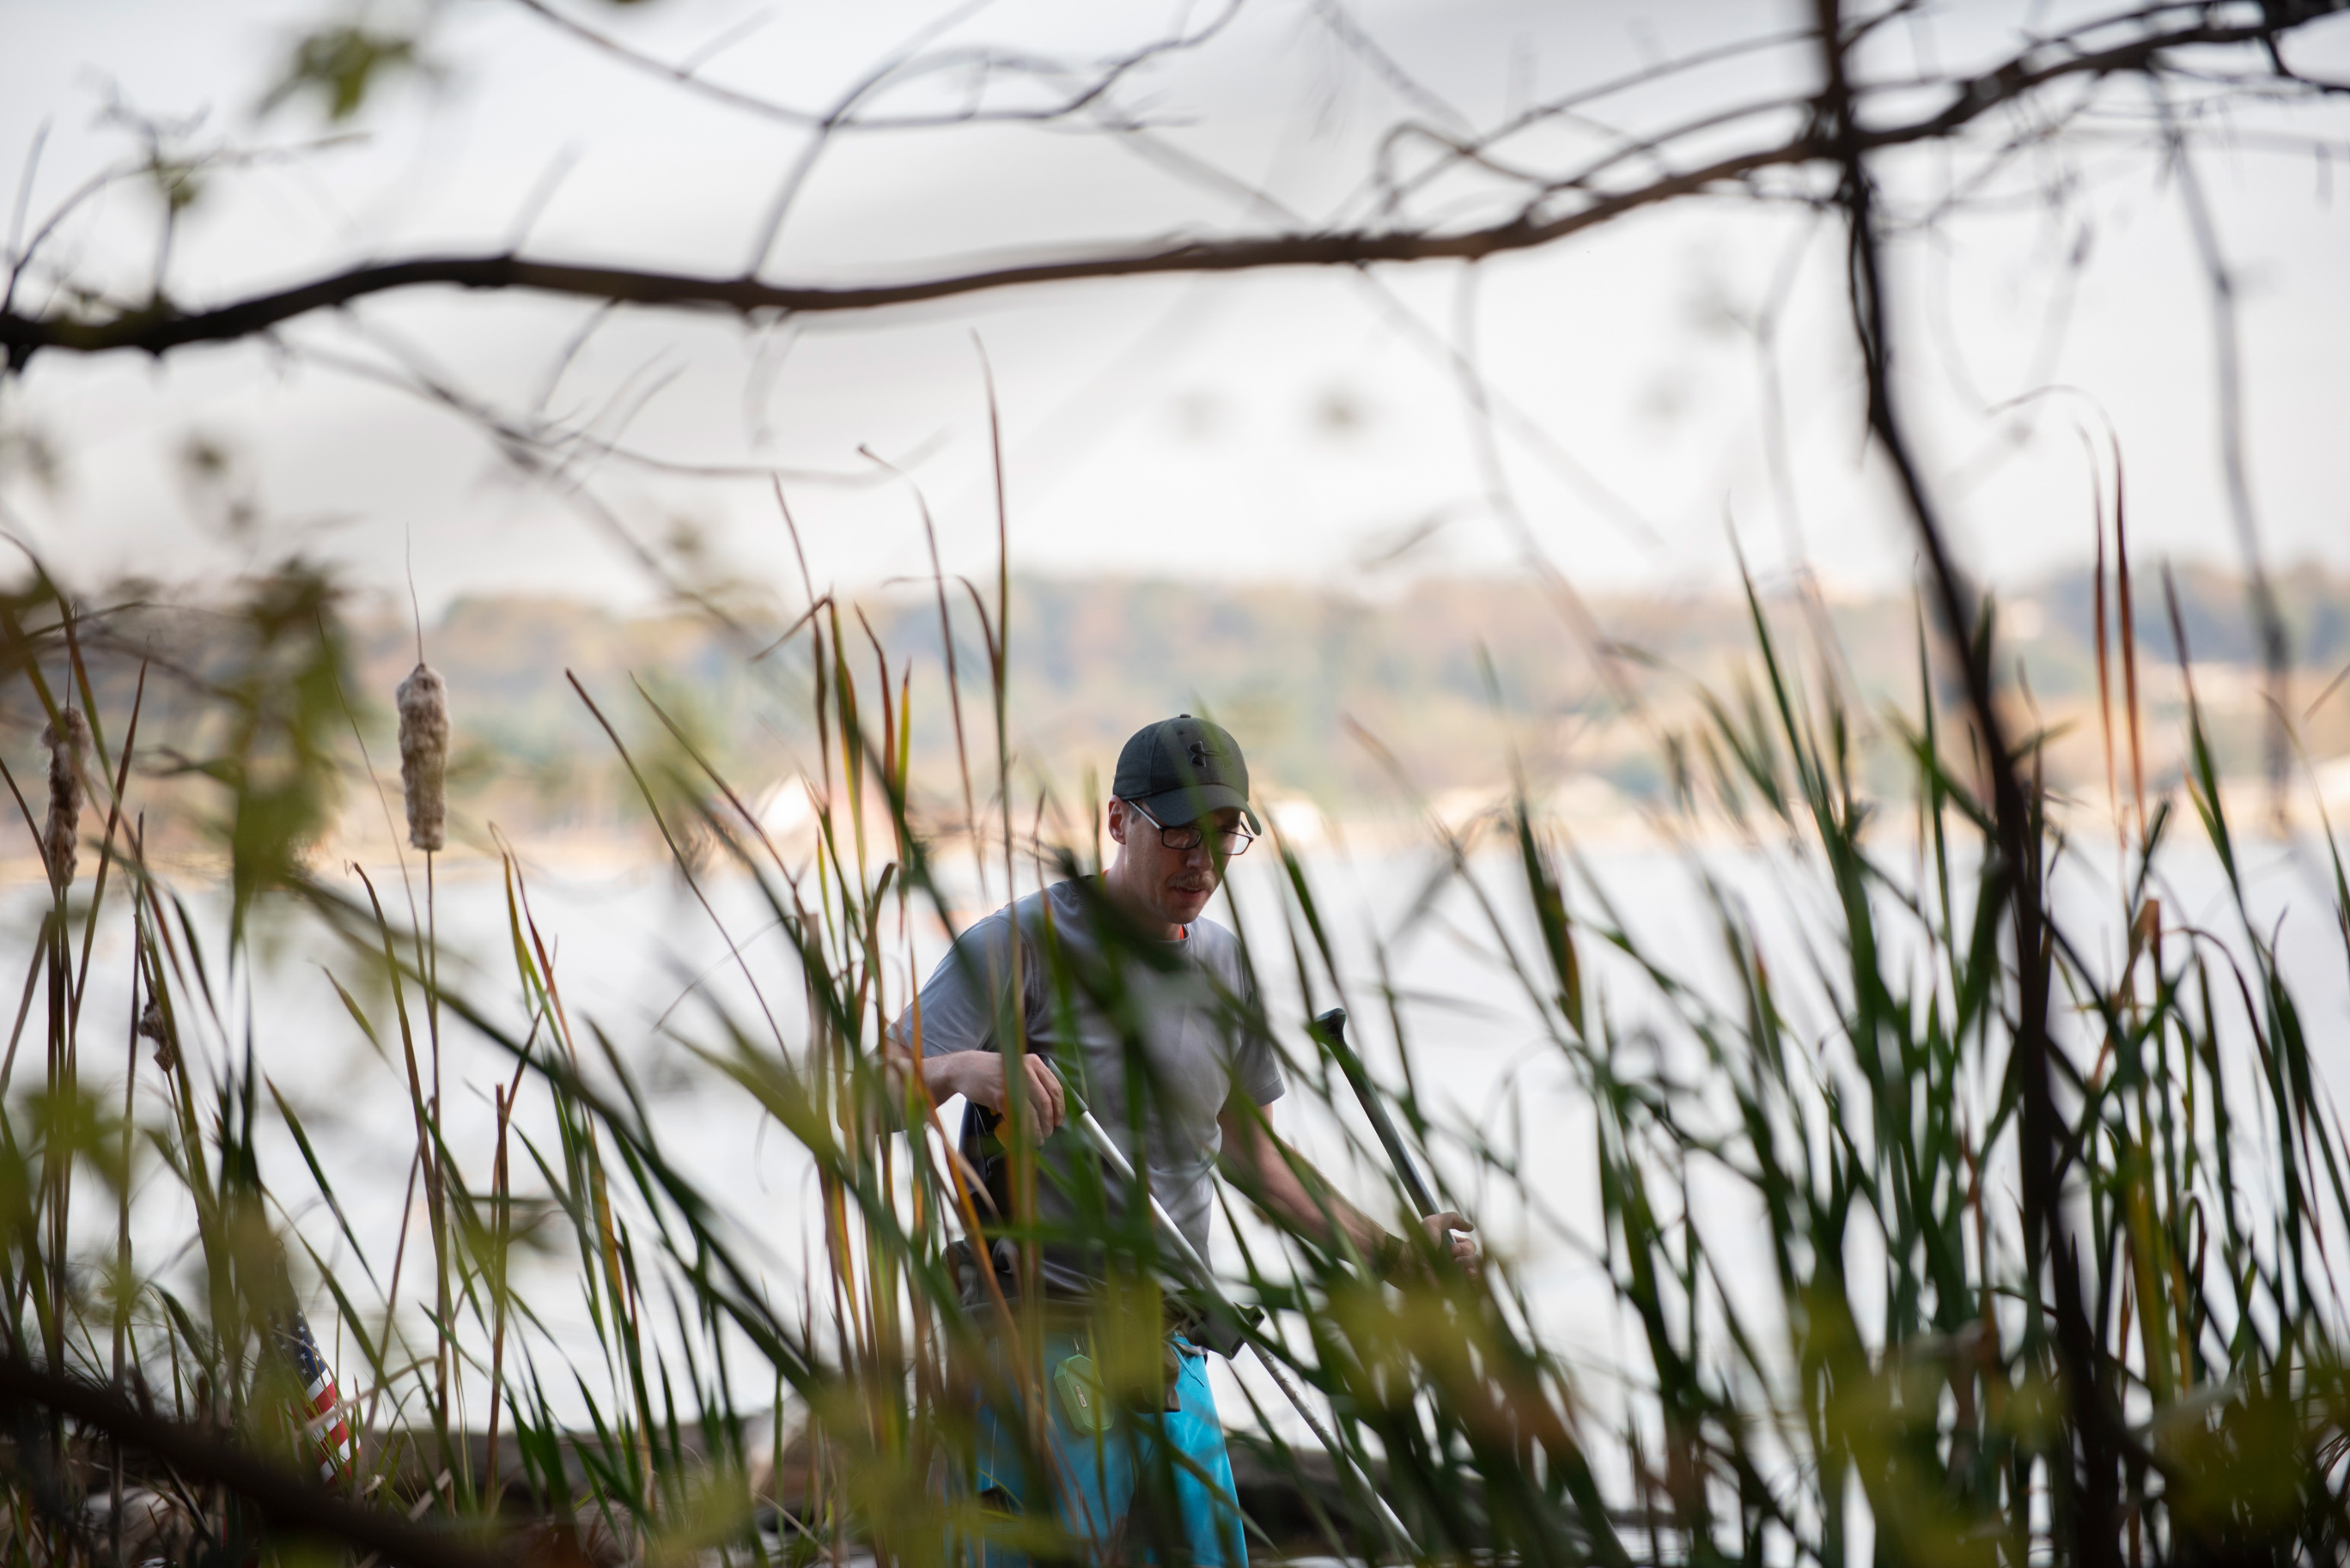 Joseph Wright is seen through cattails during a picking session on the Potomac River in Alexandria, VA on November 5, 2019.